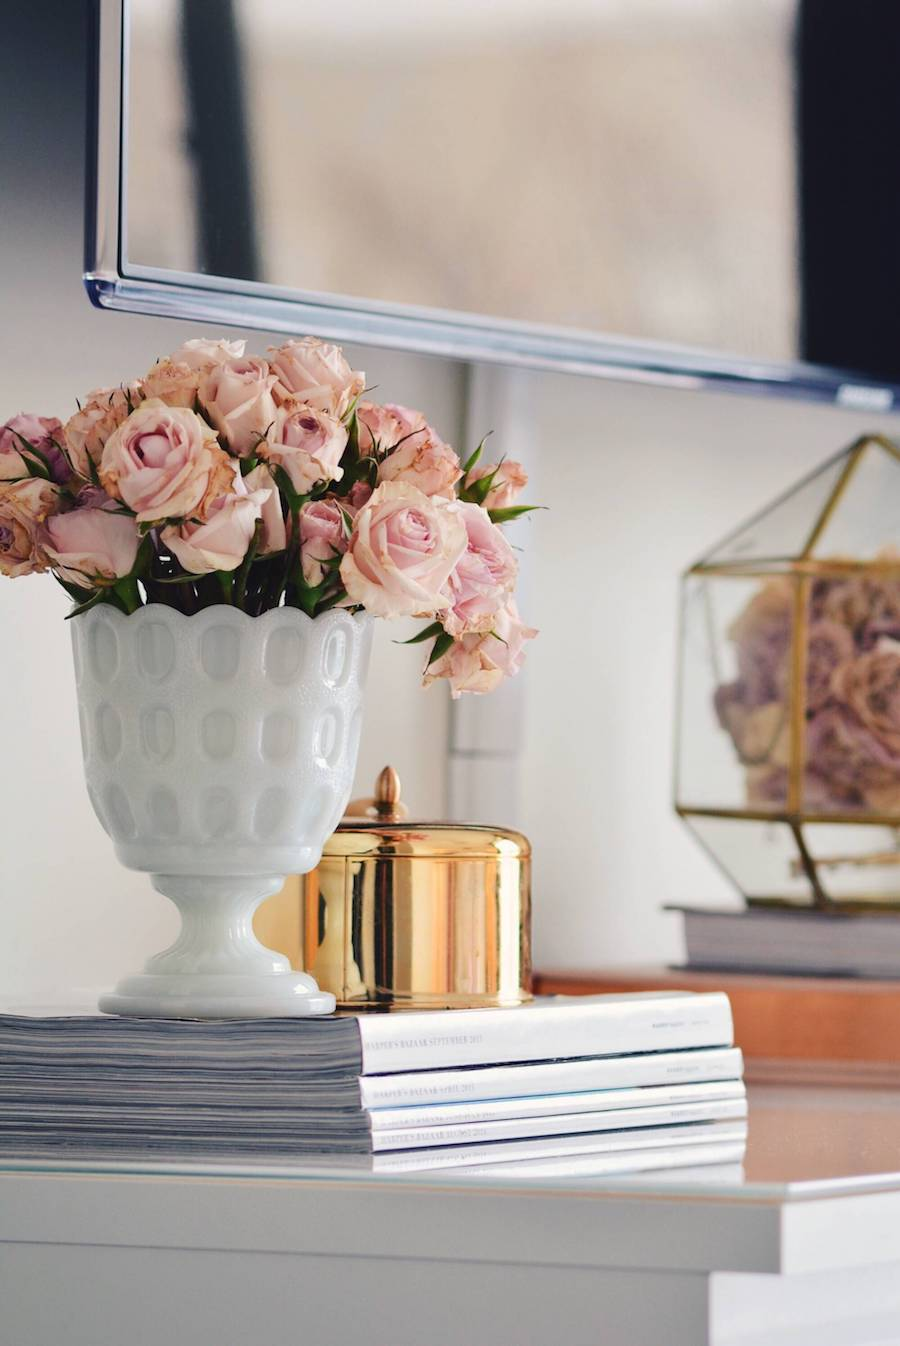 Pink flowers in small white urn on dresser